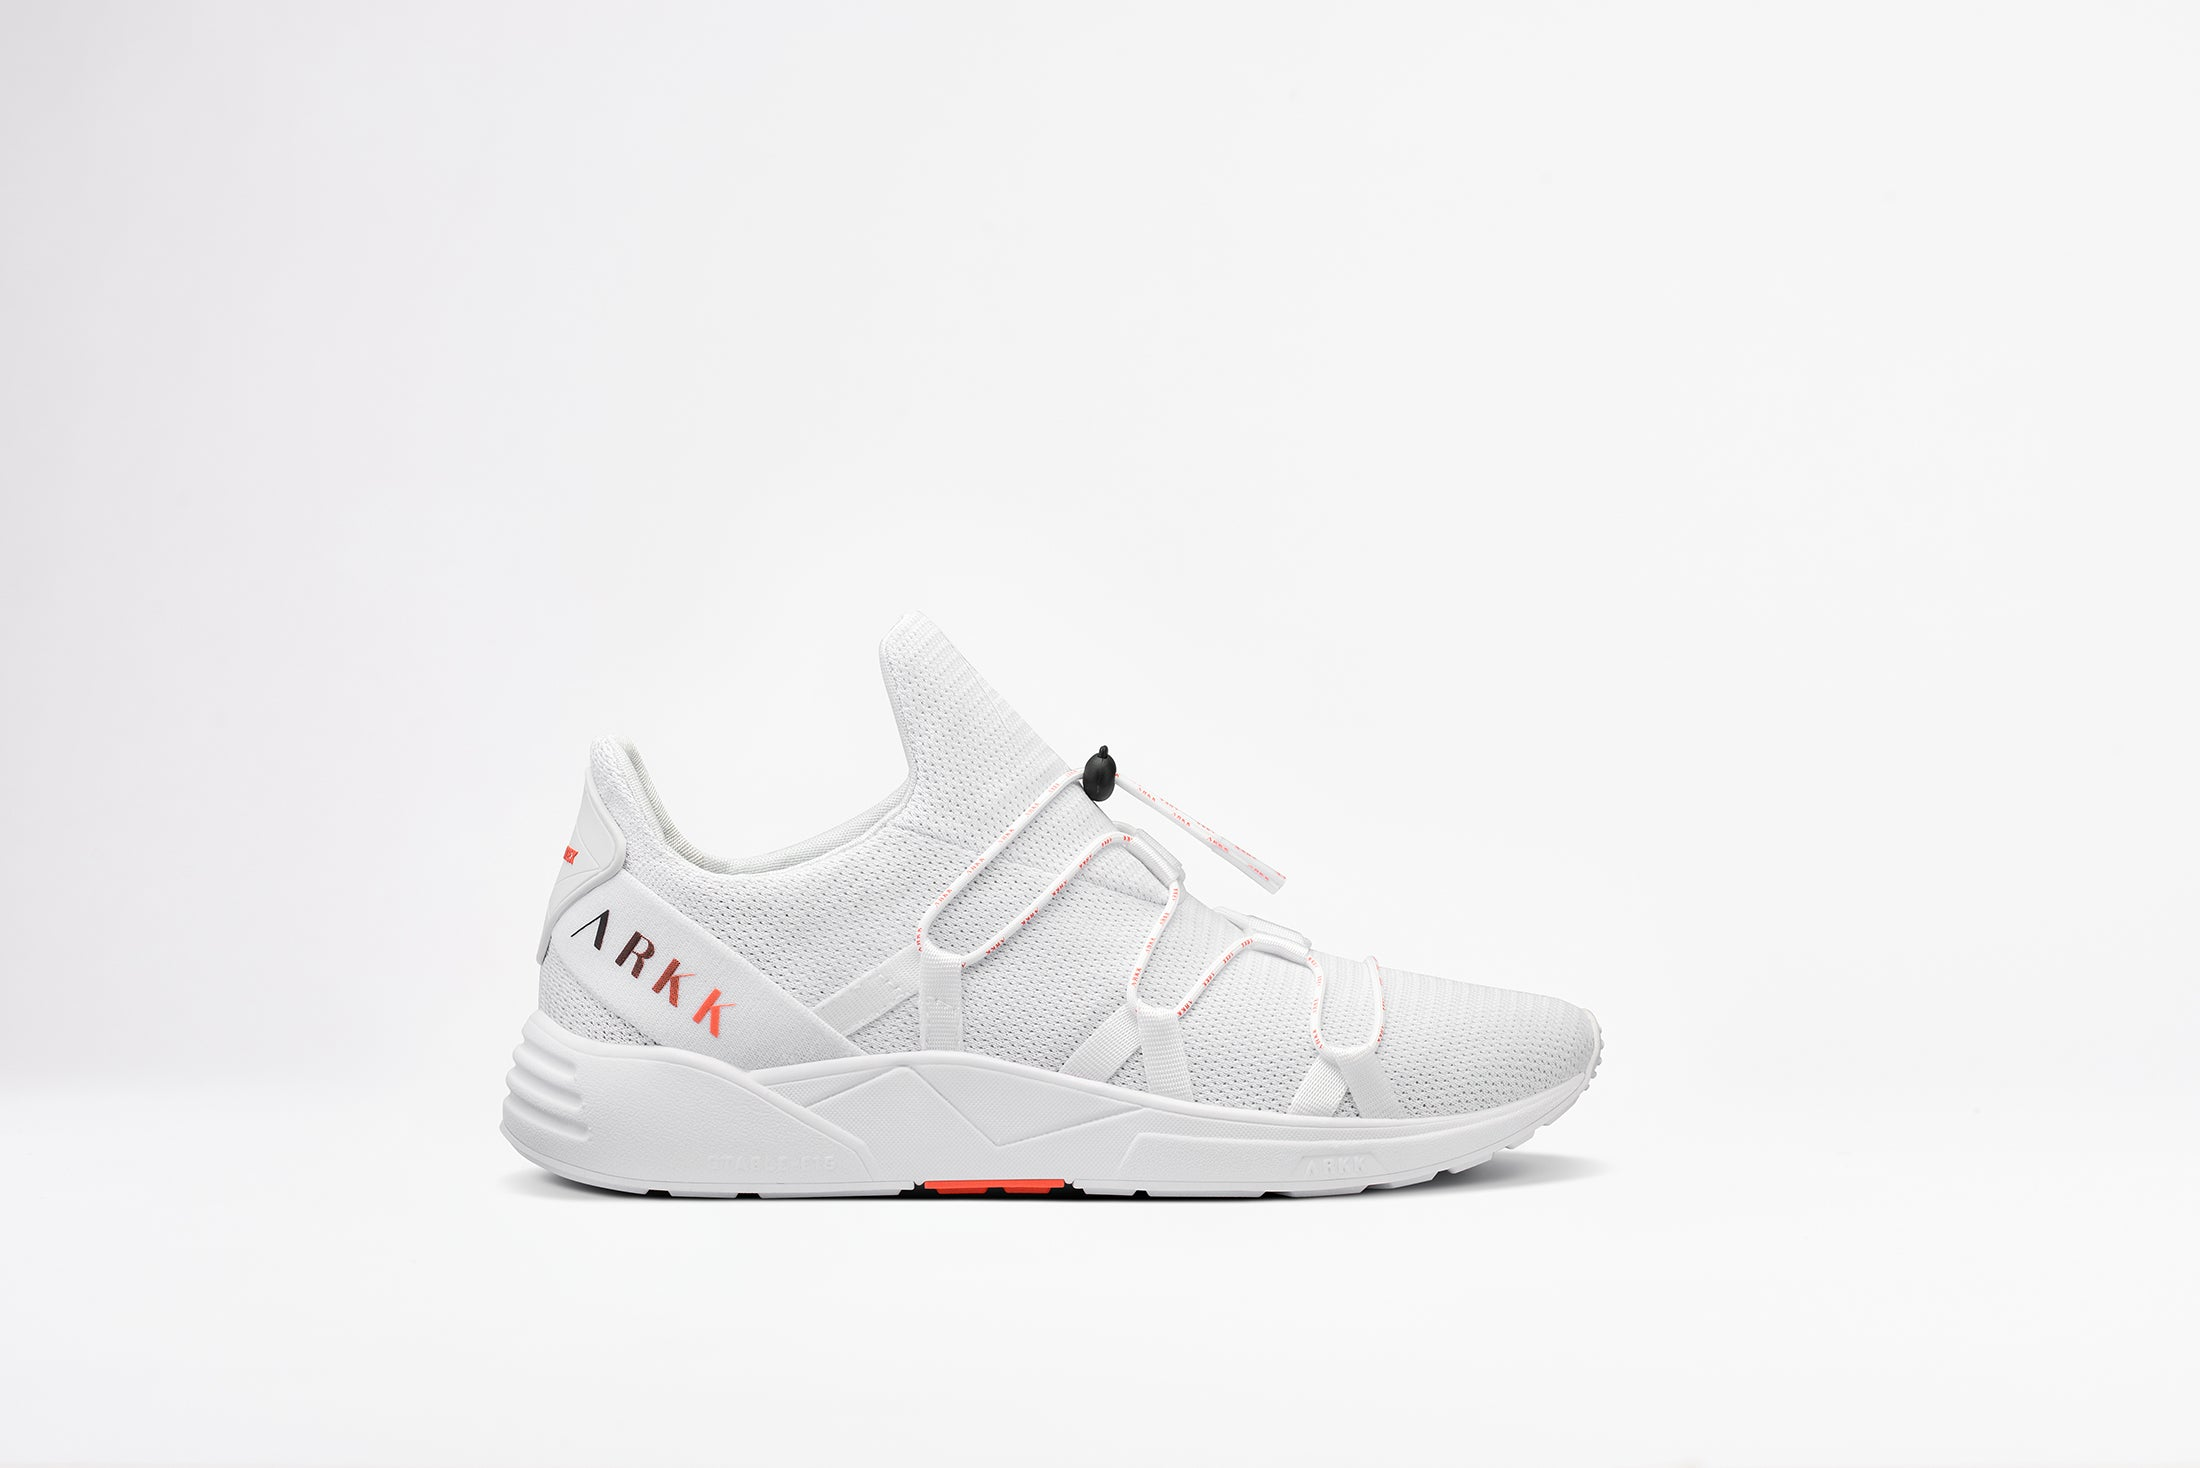 low shipping cheap price sale enjoy Arkk Scorpitex S-E15 sneakers buy cheap best seller ZoOUea